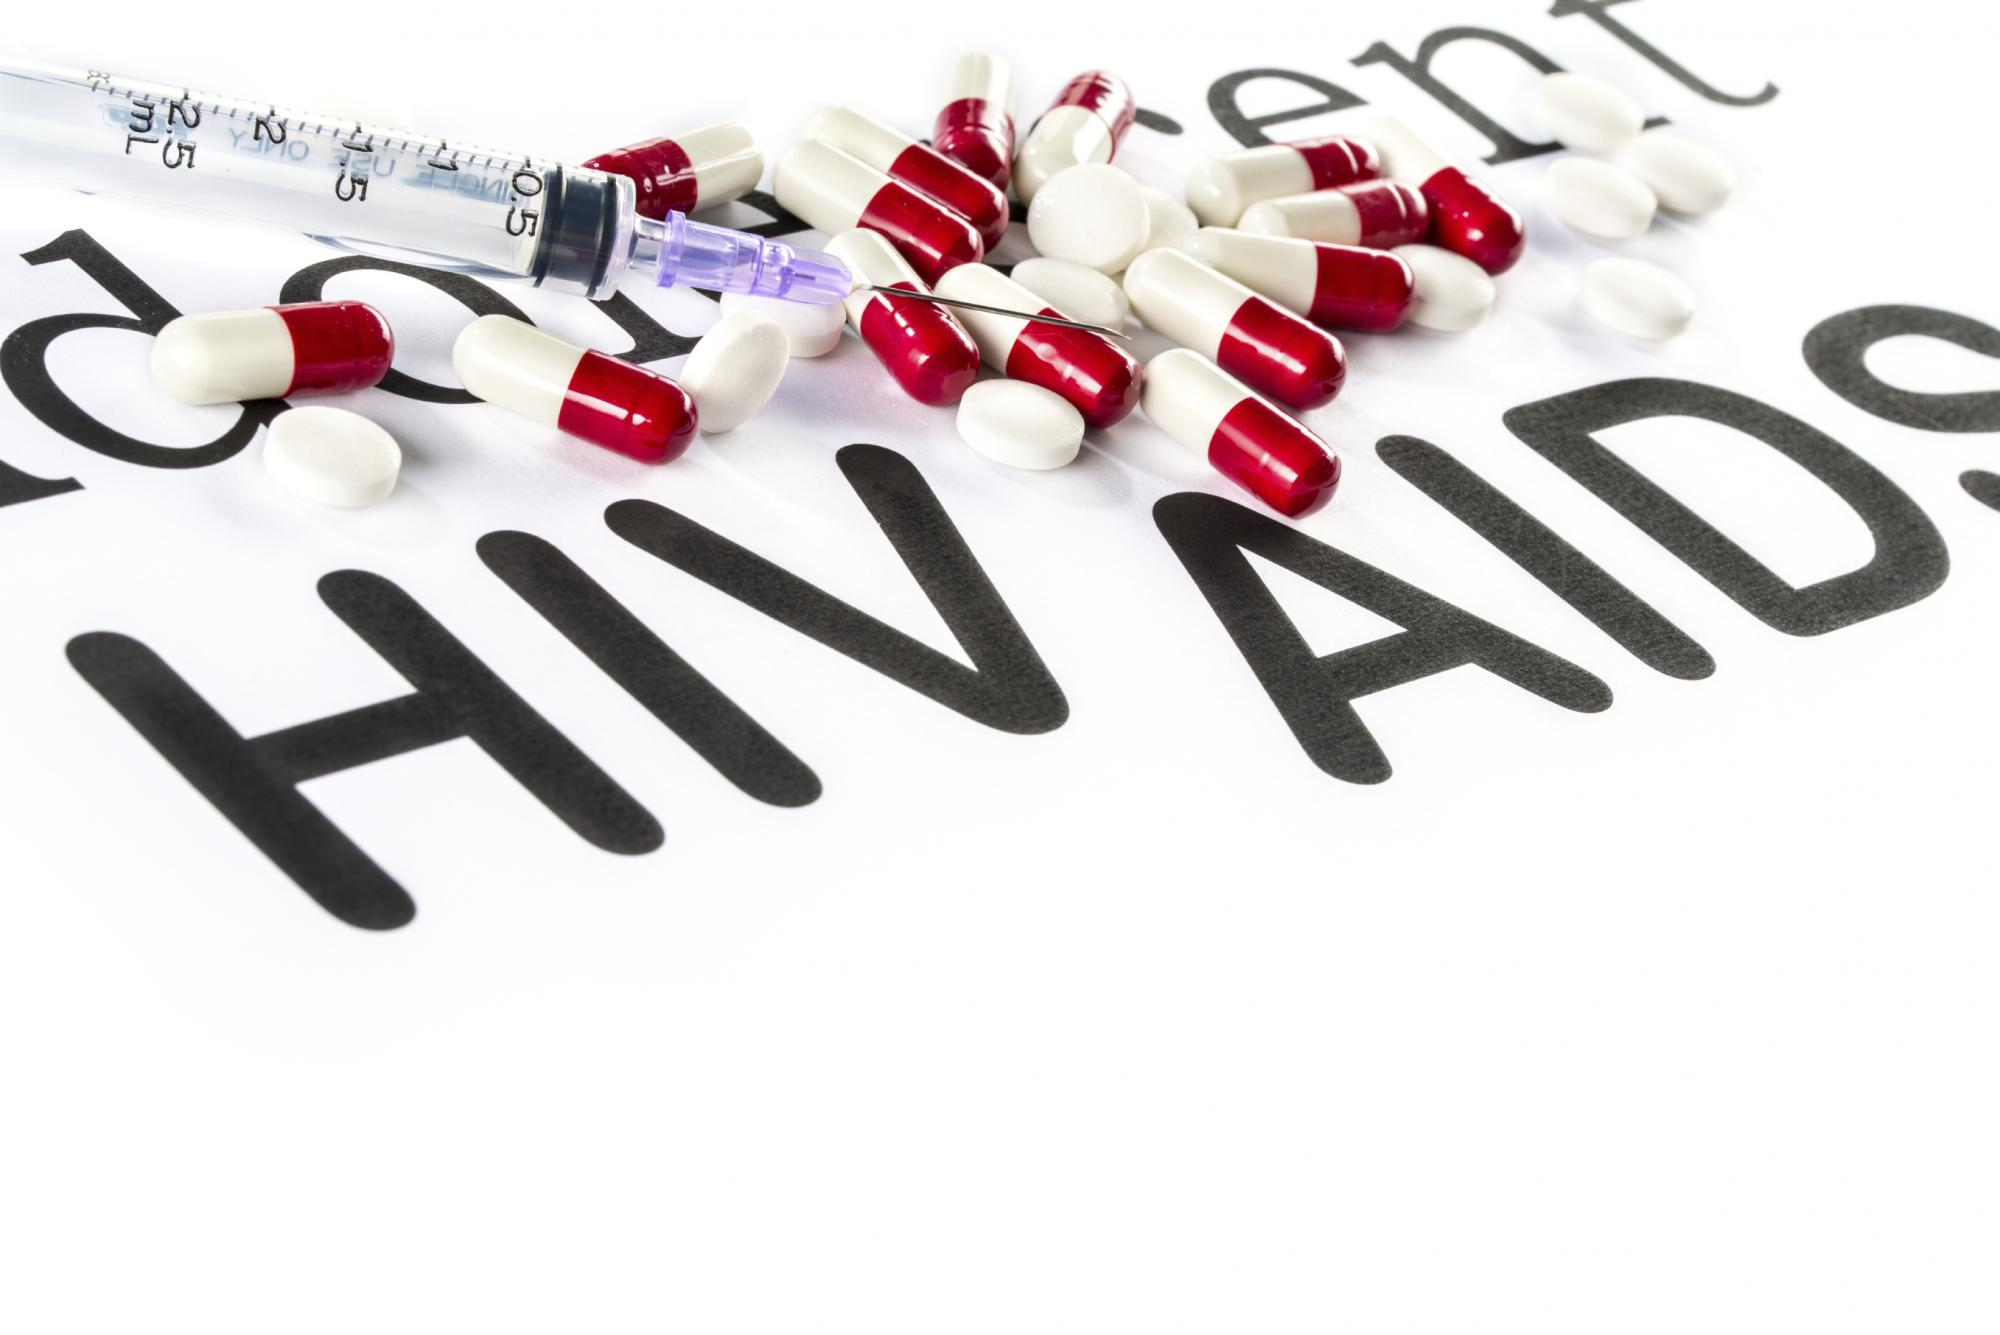 hivaids and group therapy essay